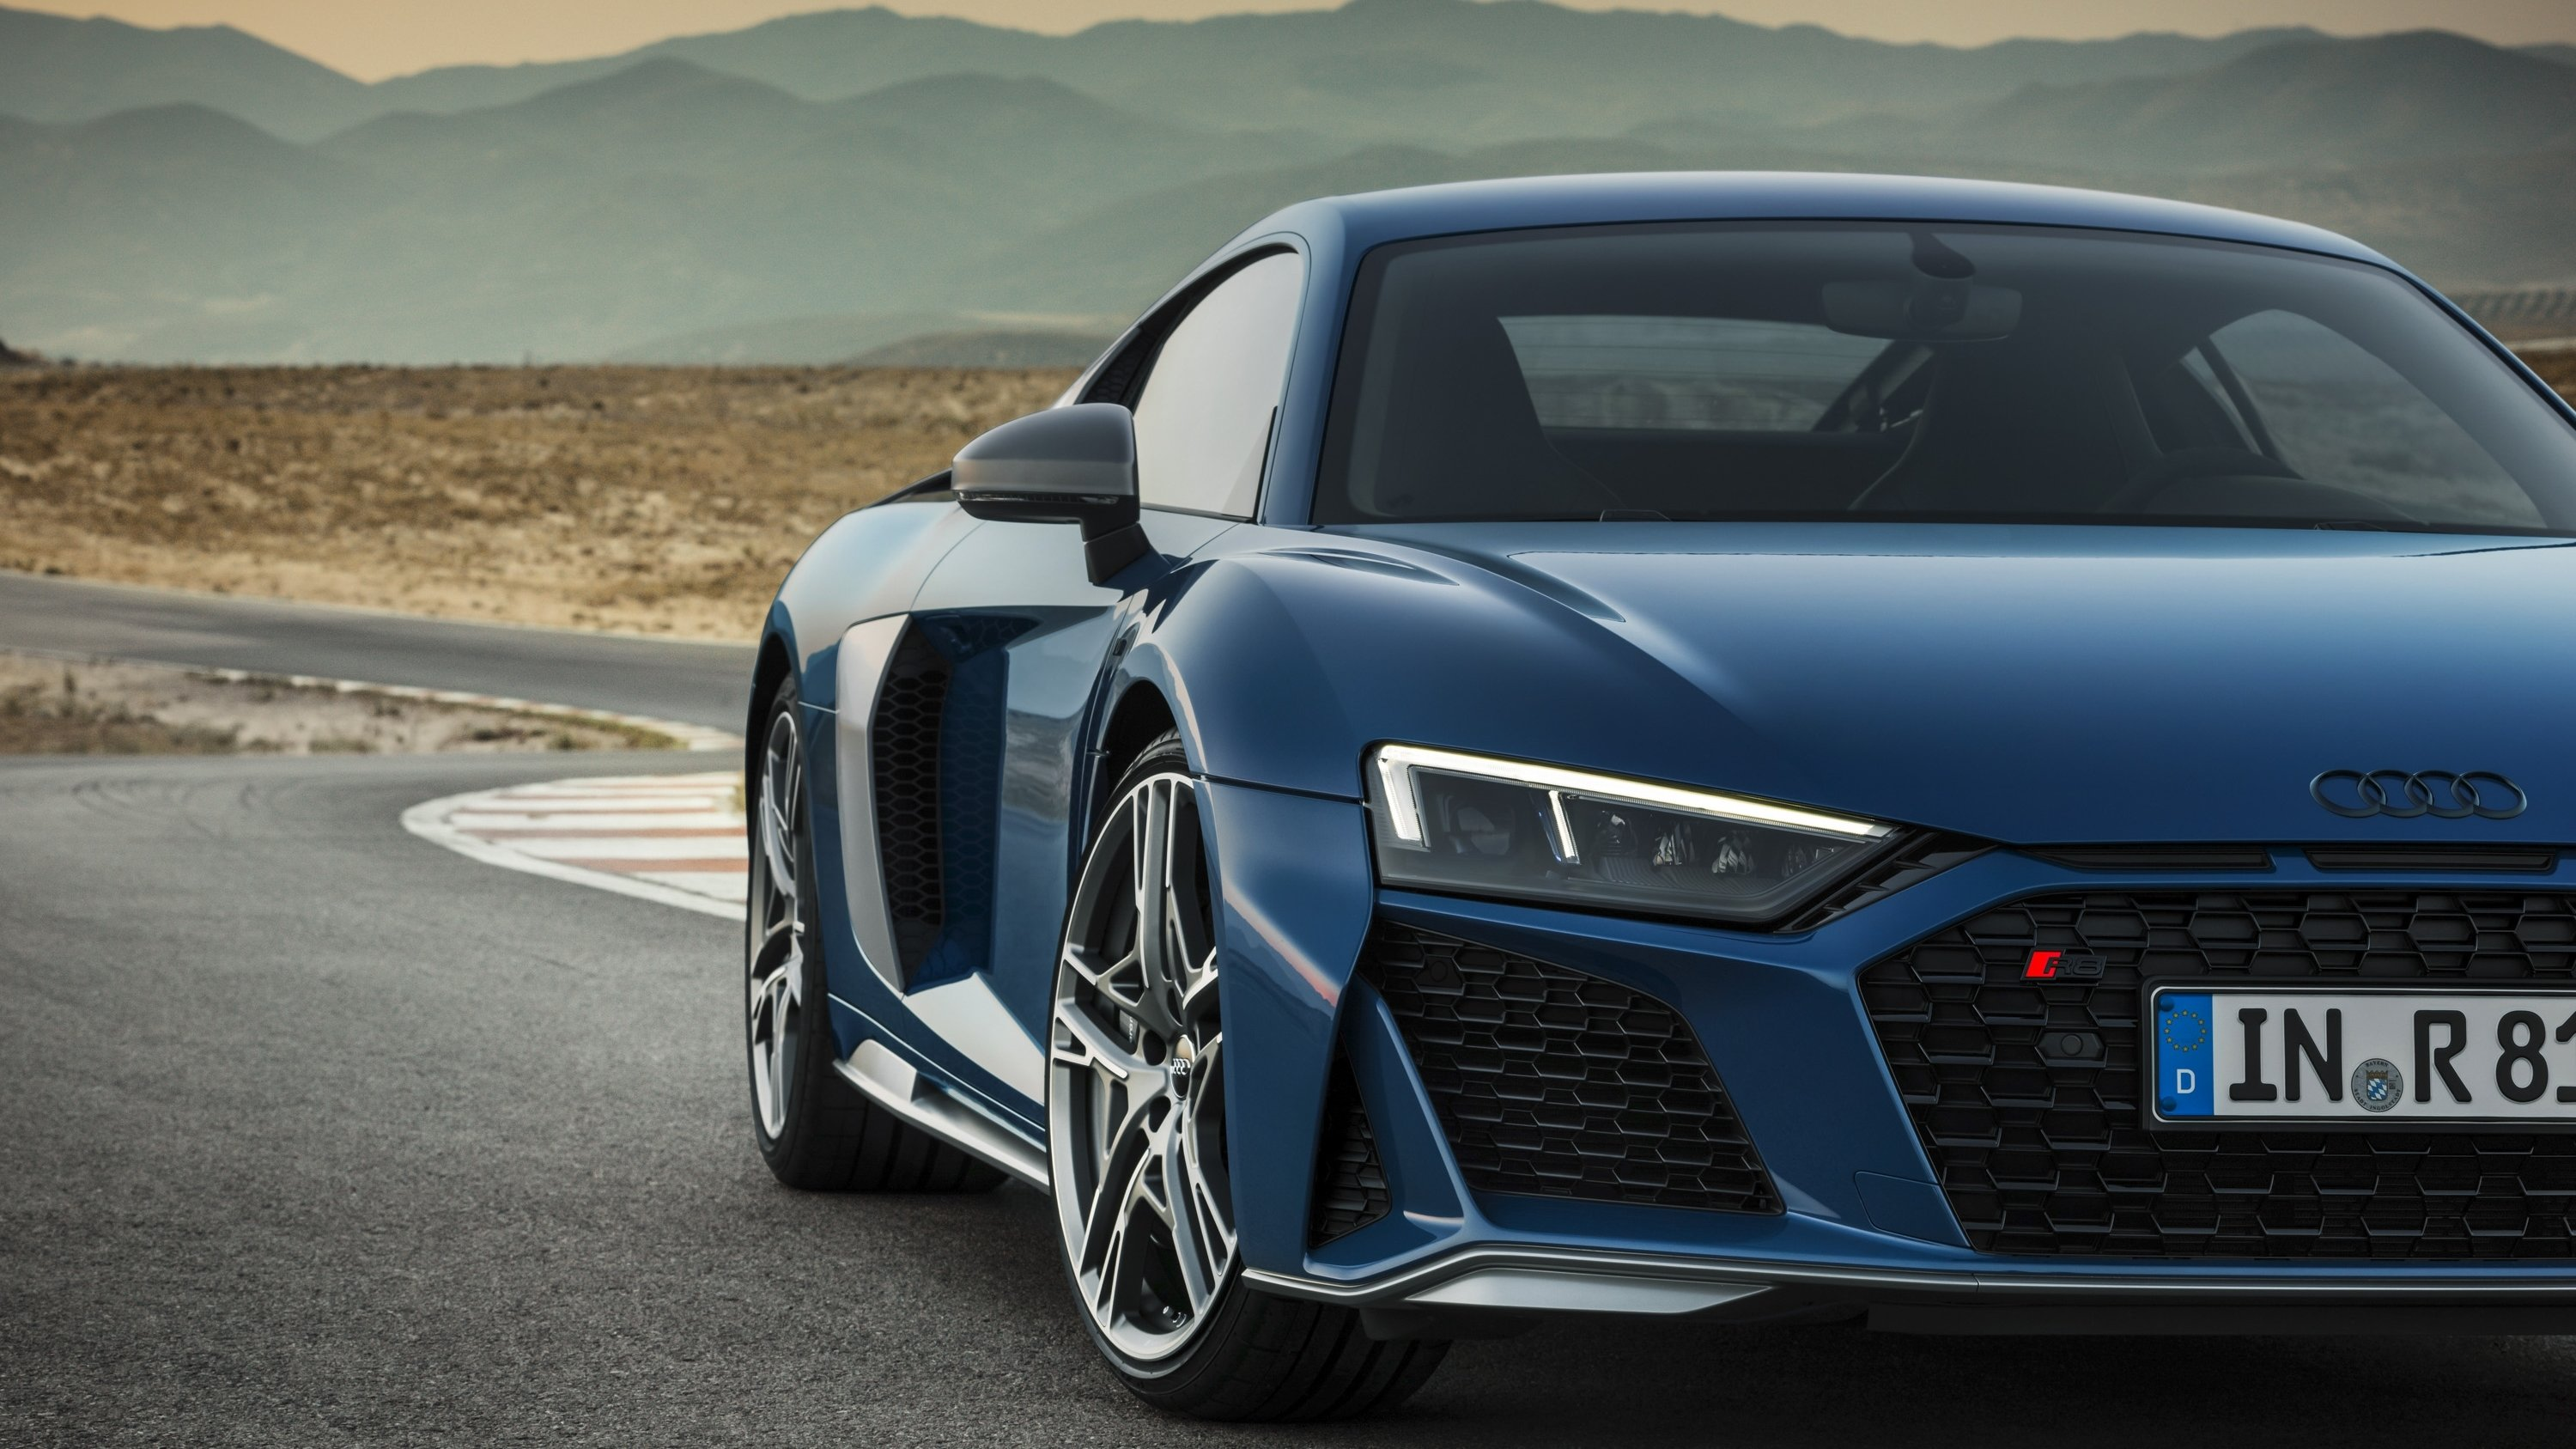 Wallpaper Of The Day 2019 Audi R8 Automotivetestdrivers Com Your